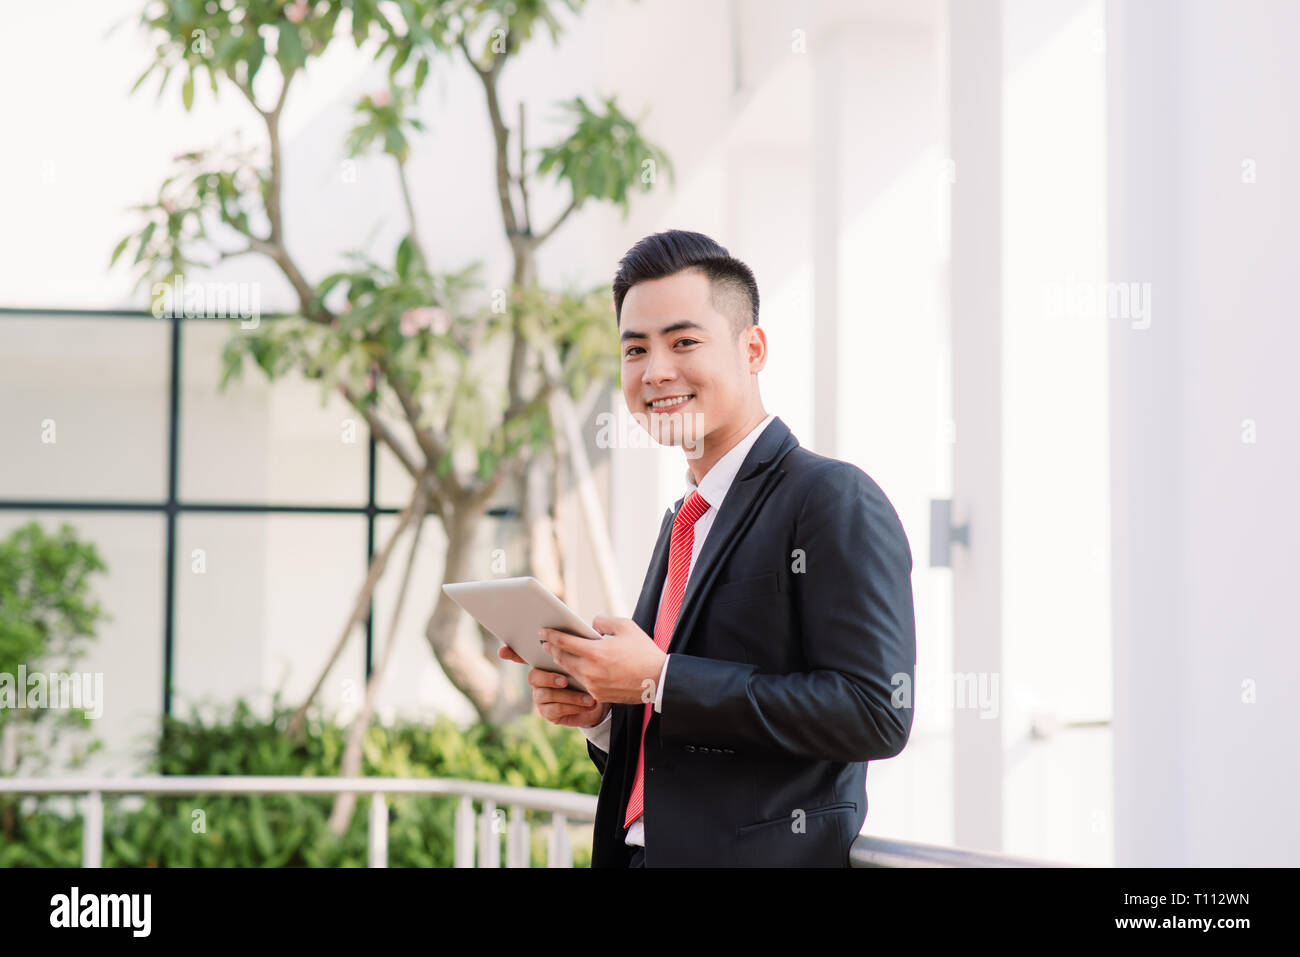 Young Asian Businessman working on tablet, Lifestyle of modern male to communicate, message or use technology in business, Always connected concept, F - Stock Image